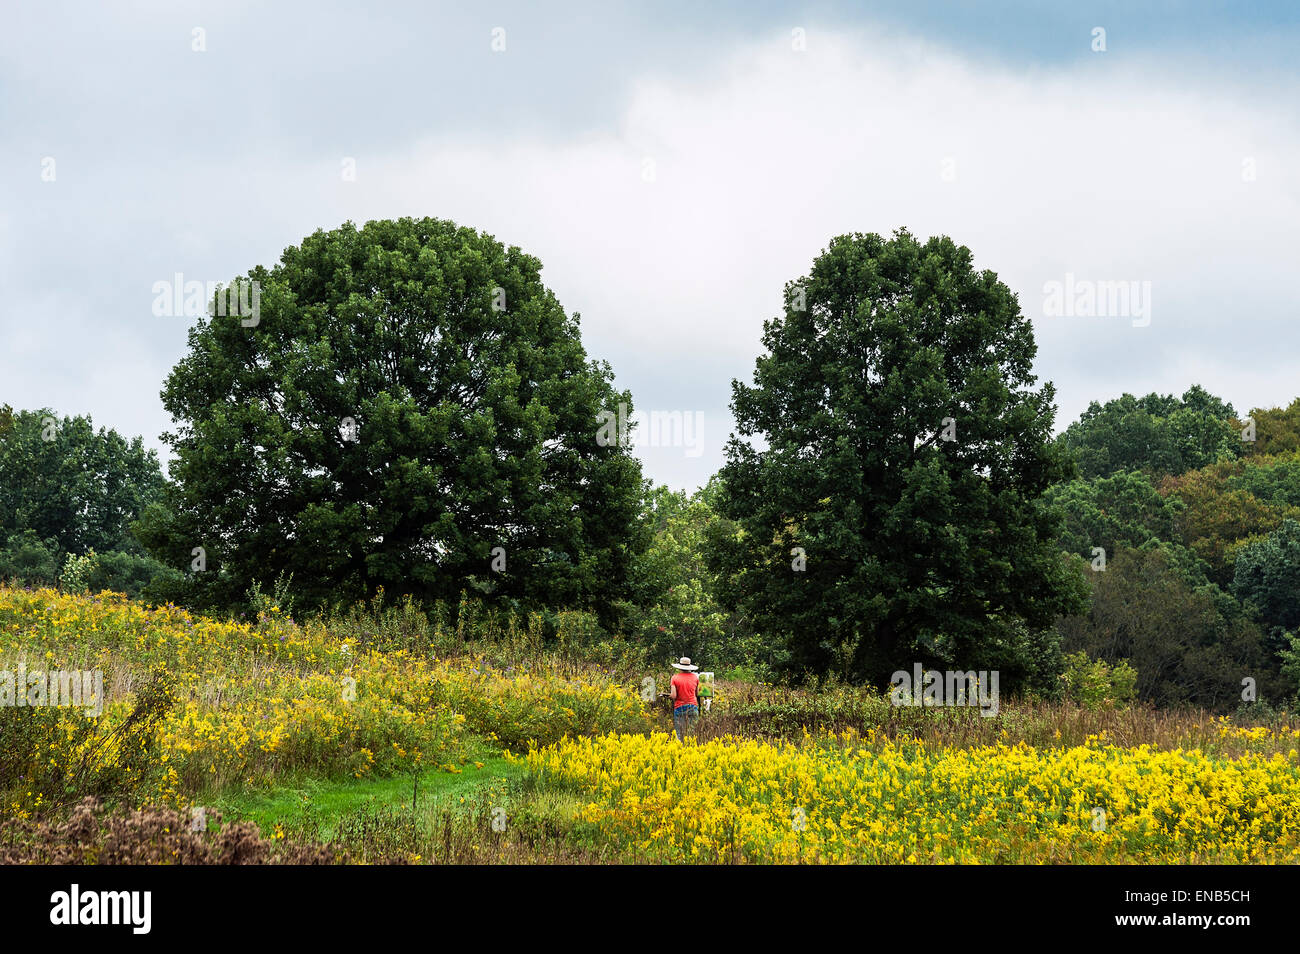 Plein air artist painting in a meadow of flowers. Stock Photo